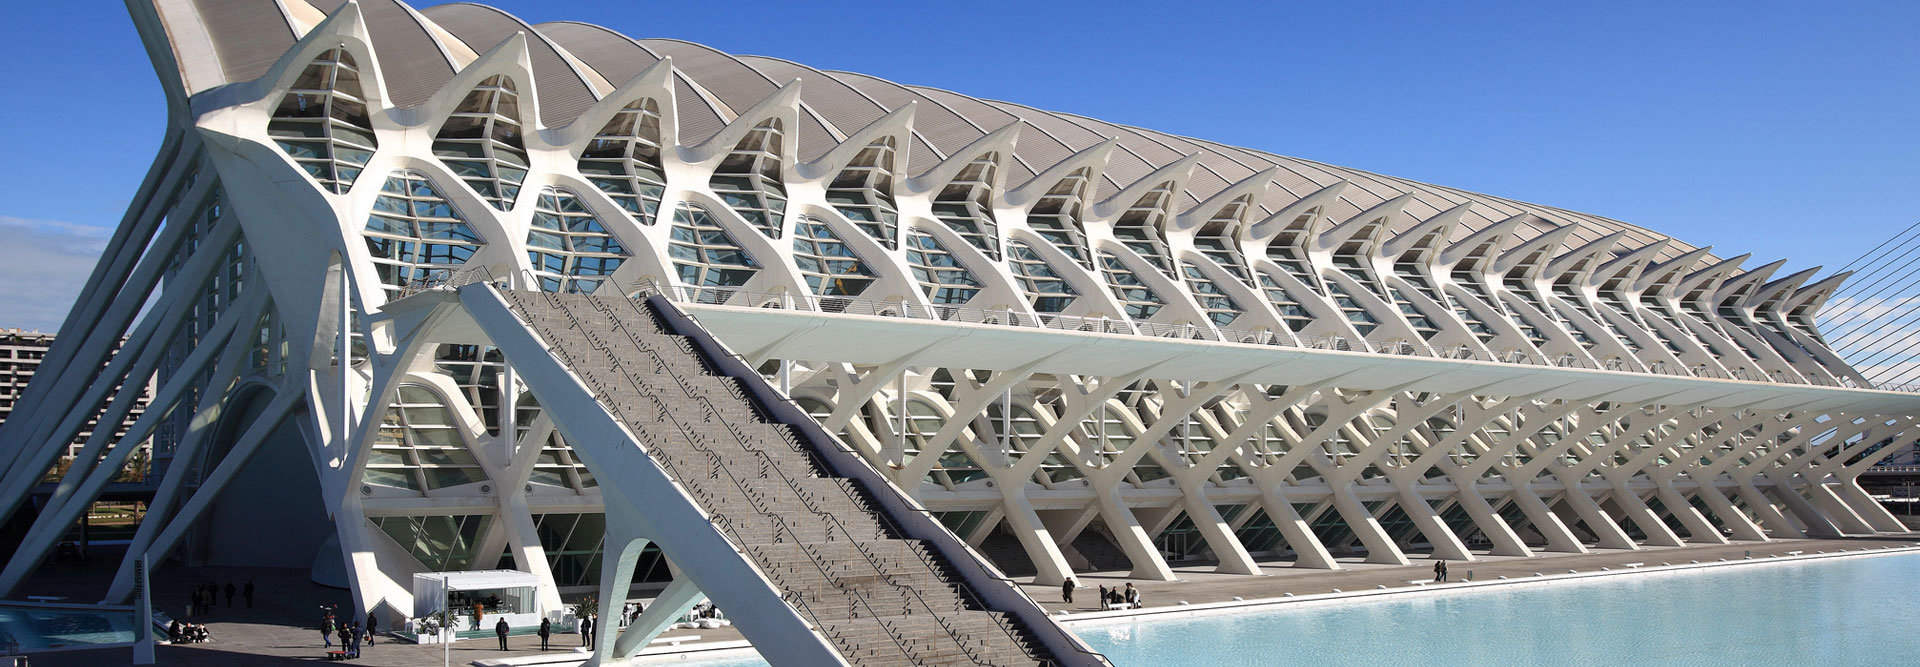 Principe-Felipe-sciences-museum-Valencia-experiences-and-gateways